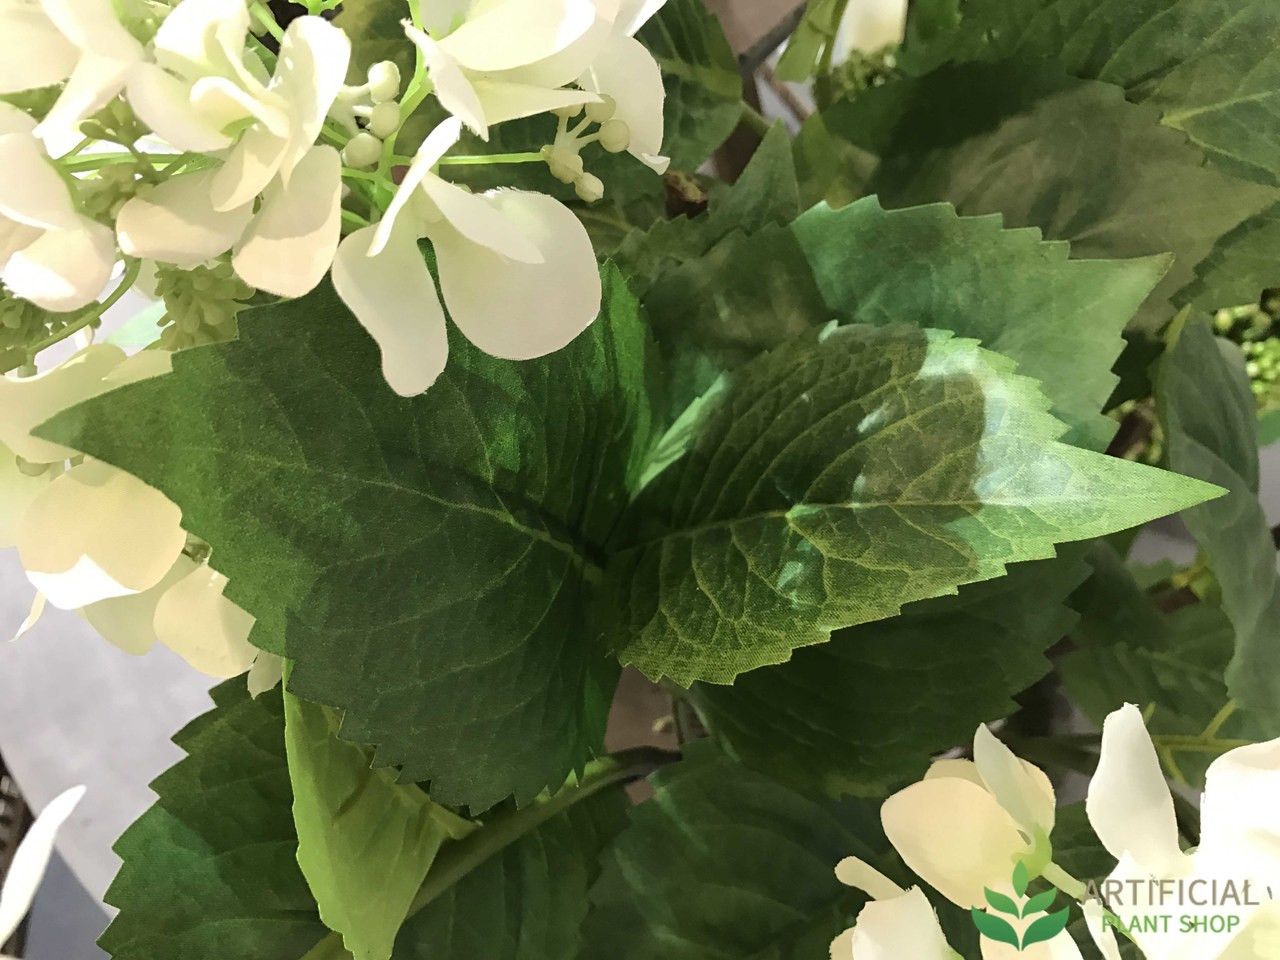 Artificial Hydrangea Leaves